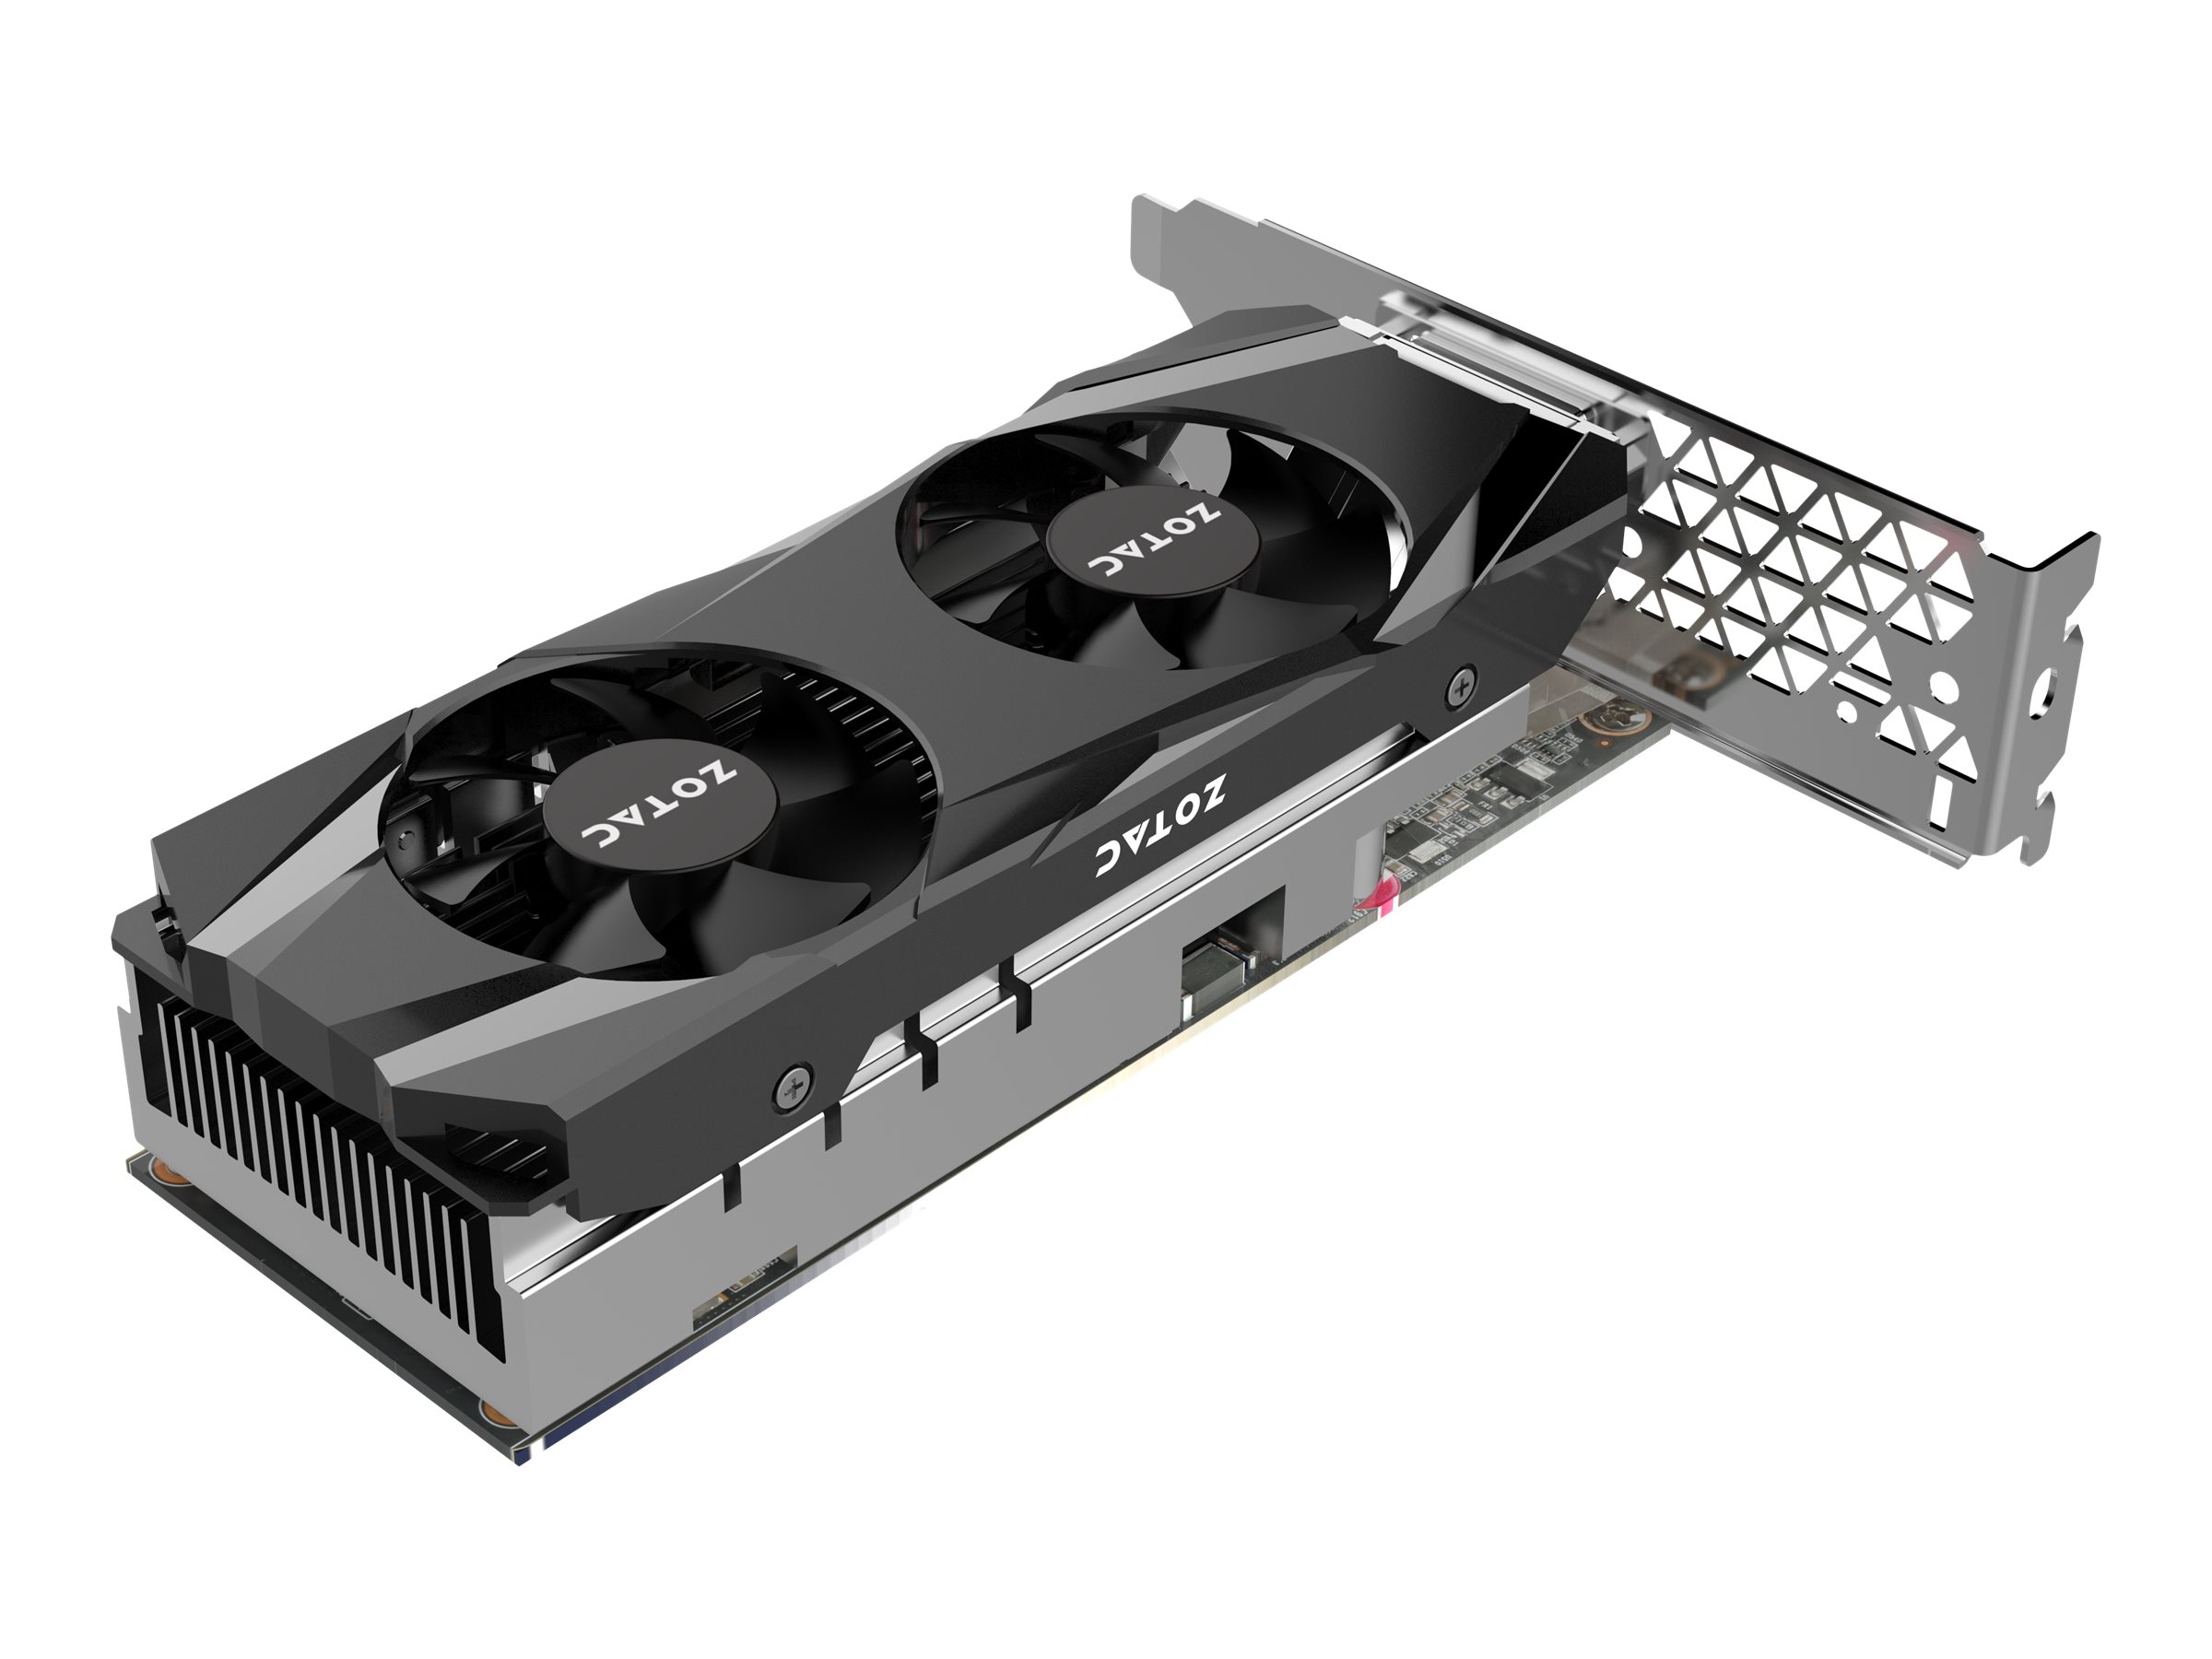 ZOTAC GeForce GTX 1050 Ti - Grafikkarten - GF GTX 1050 Ti - 4 GB GDDR5 - PCIe 3.0 Low-Profile - DVI, HDMI, DisplayPort